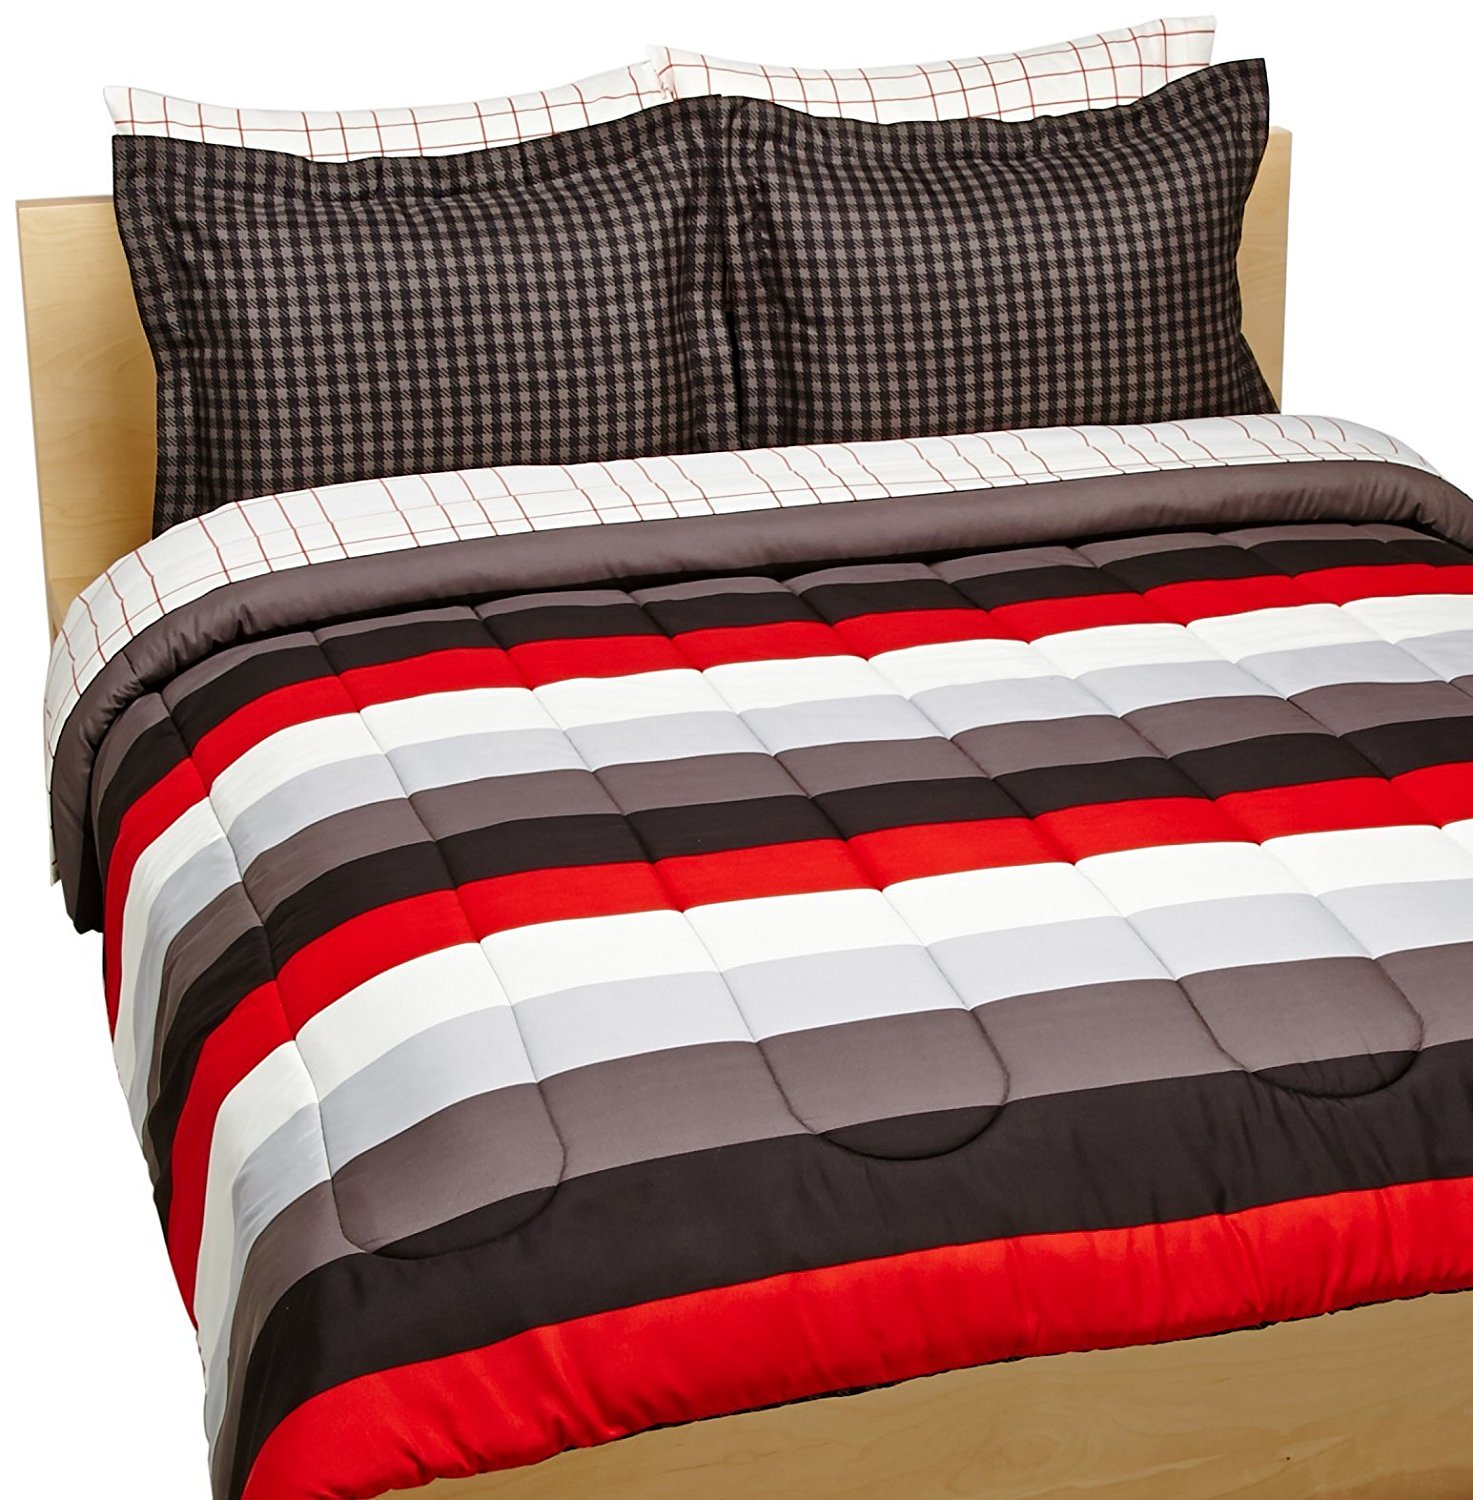 AmazonBasics Bed in a Bag Bedding - AmazonBasics 7 Piece Bed In A Bag, Full Queen